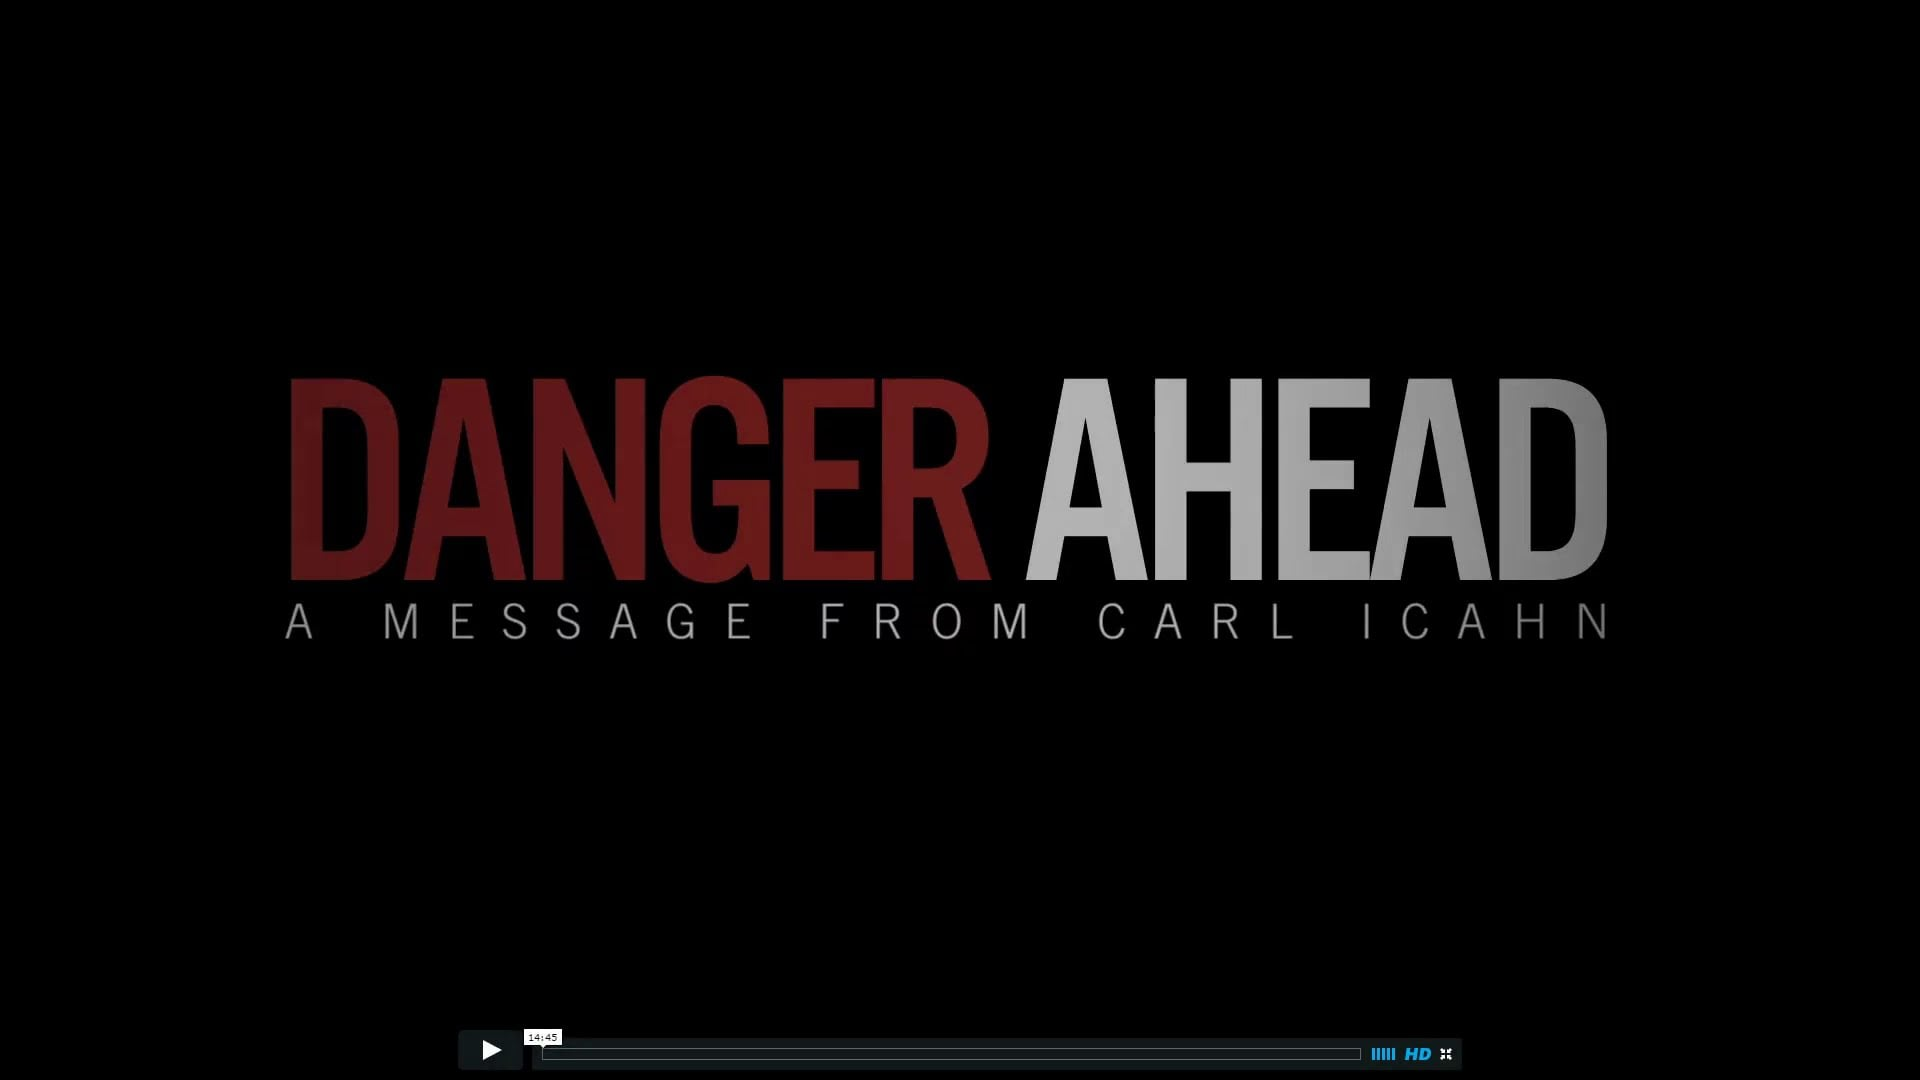 Danger Ahead – A Message from Carl Ichan